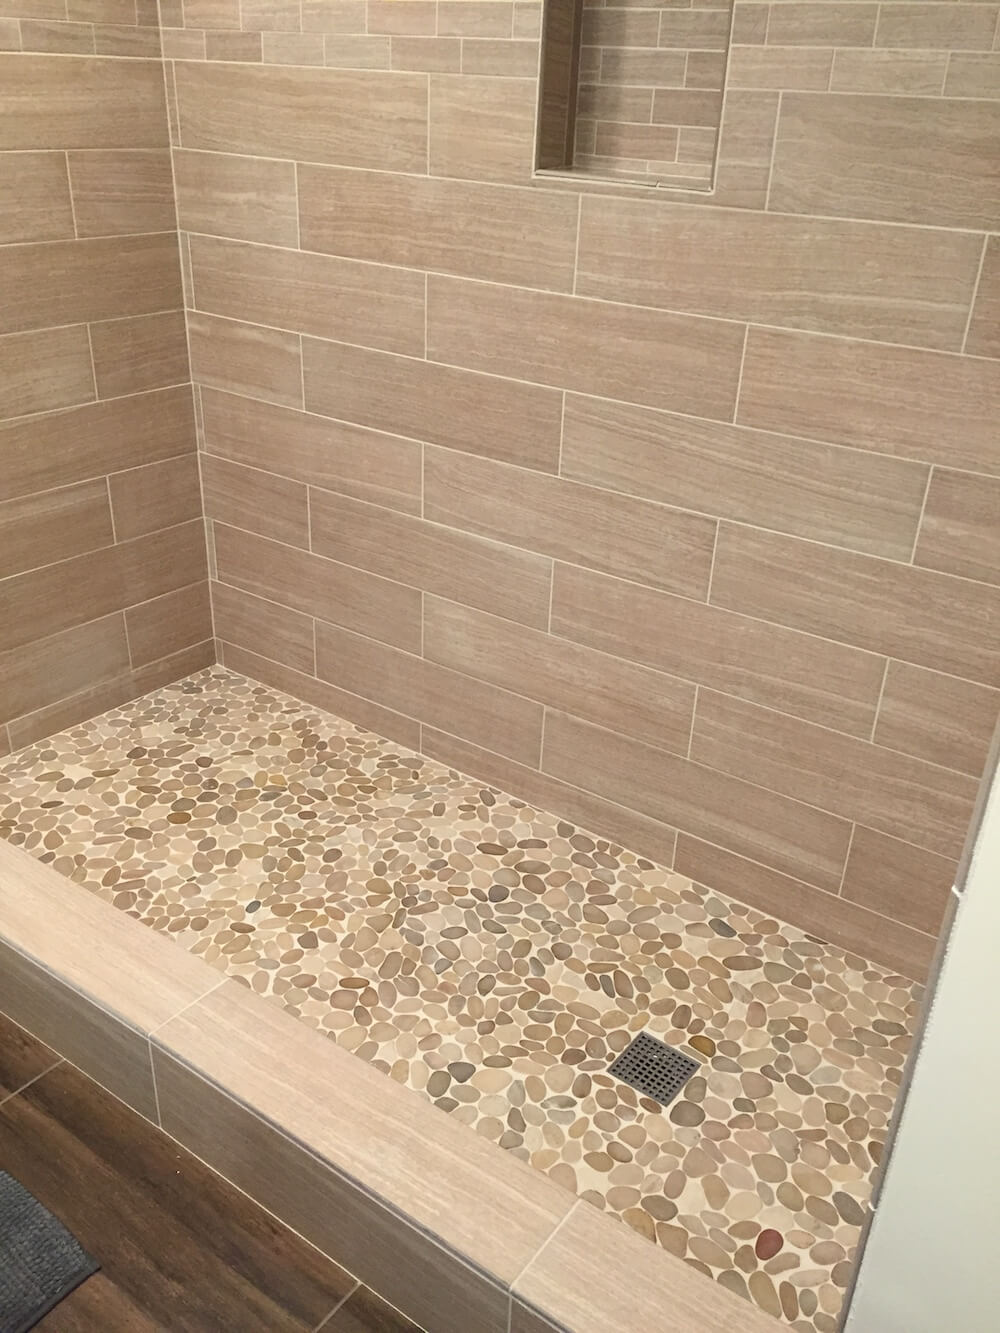 2017 cost to tile a shower how much to tile a shower Best way to tile around a bath